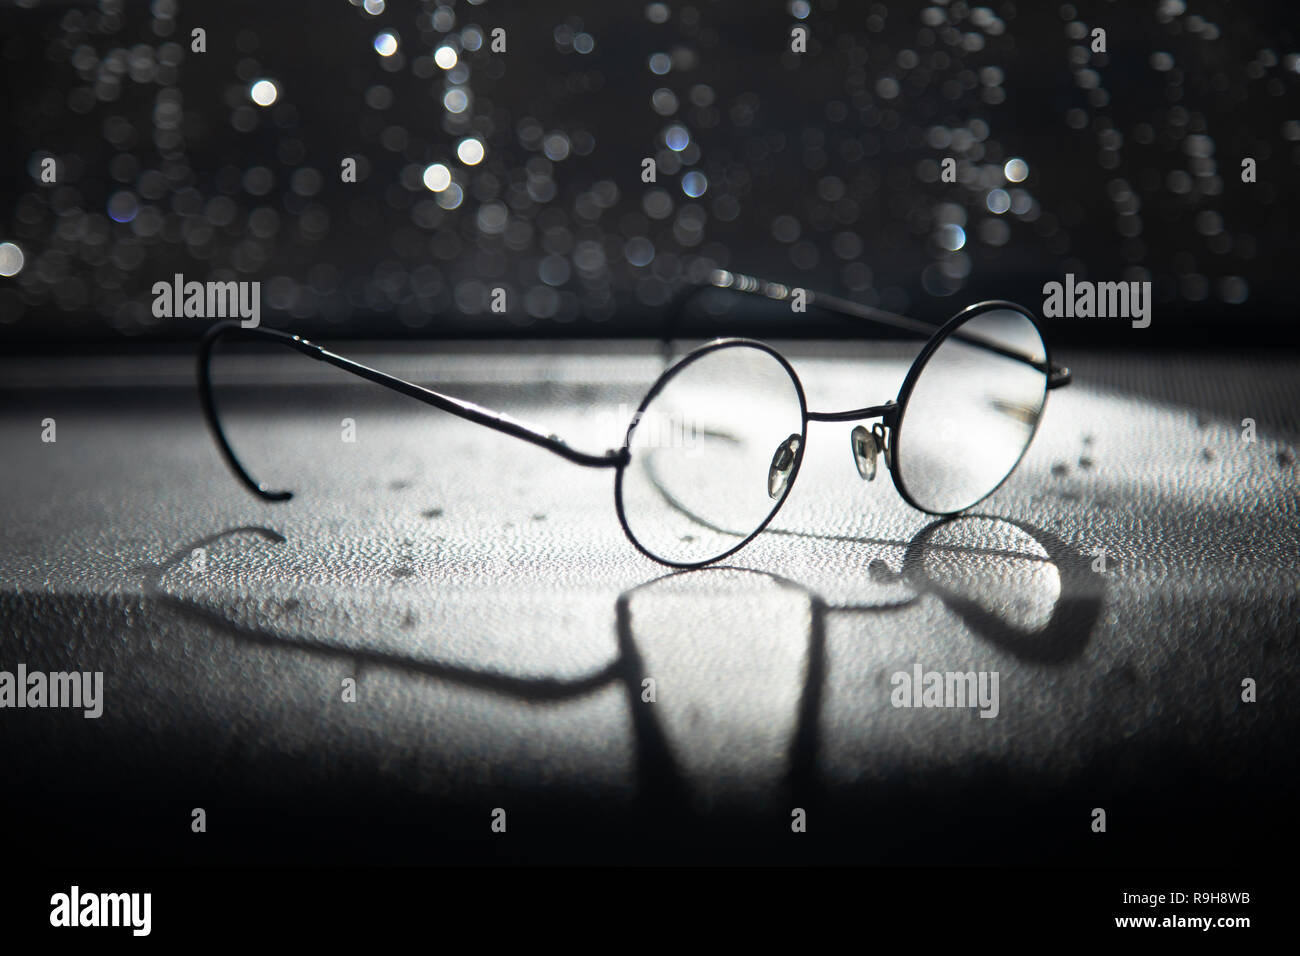 11391bb4d315 John Lennon Glasses Stock Photos   John Lennon Glasses Stock Images ...